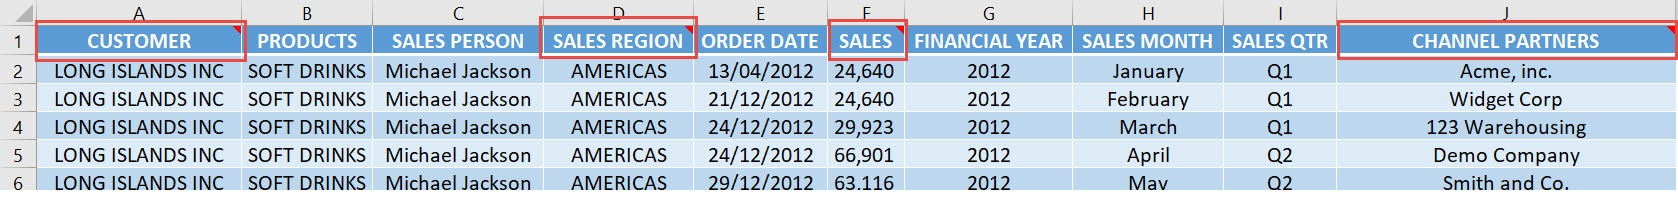 Print All Comments of a Worksheet Using Macros In Excel | MyExcelOnline